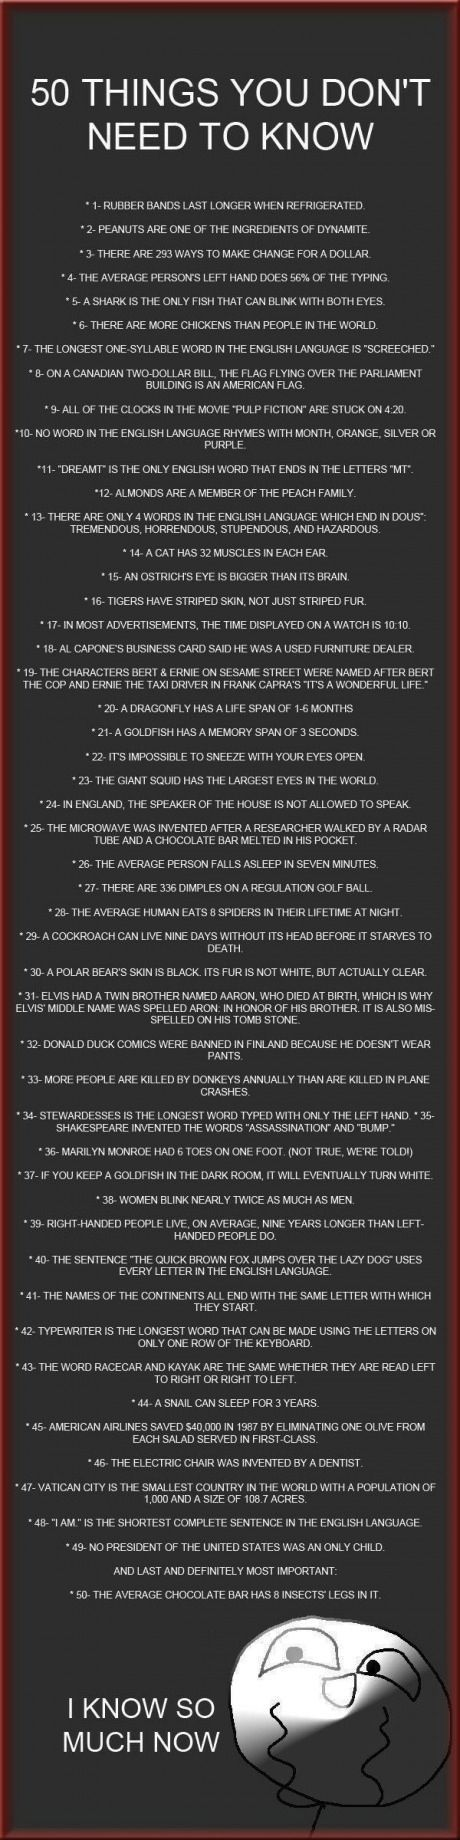 50 things you don't need to know. fascinating.